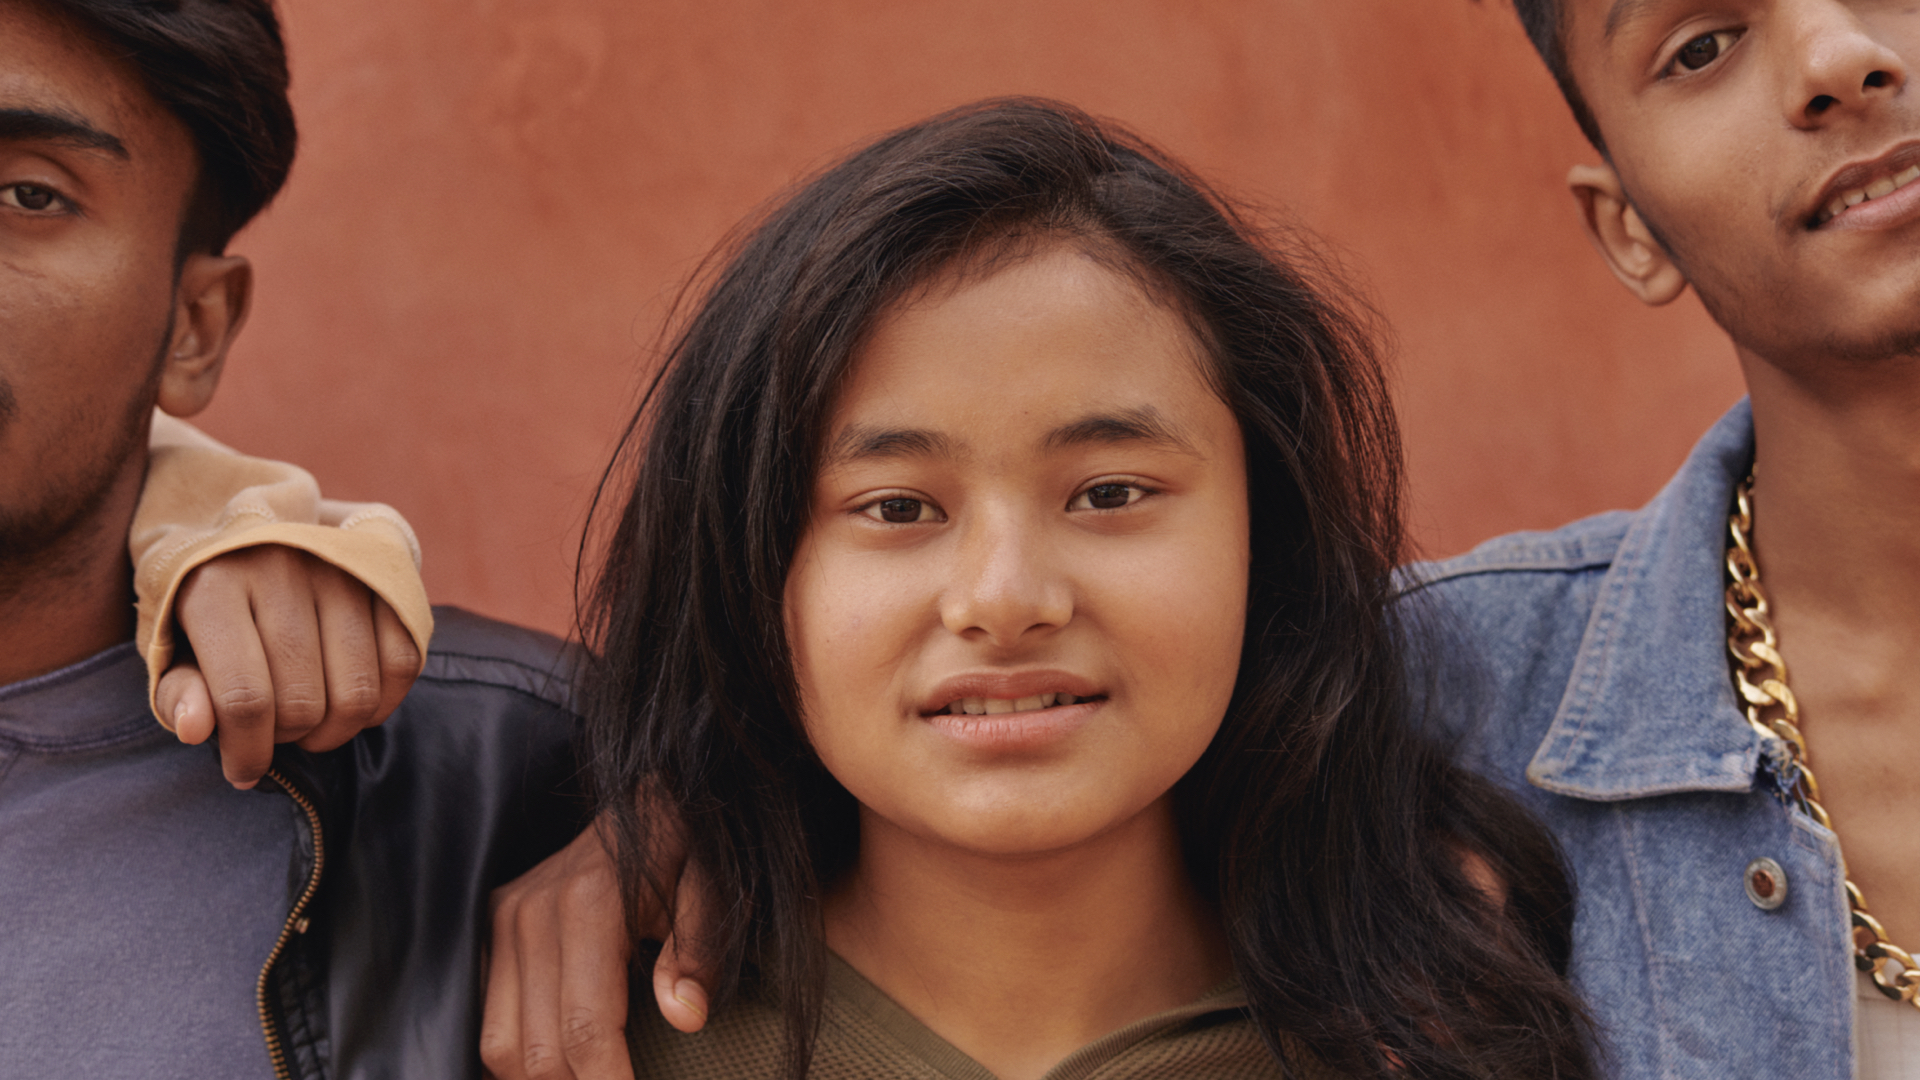 Image of young girl